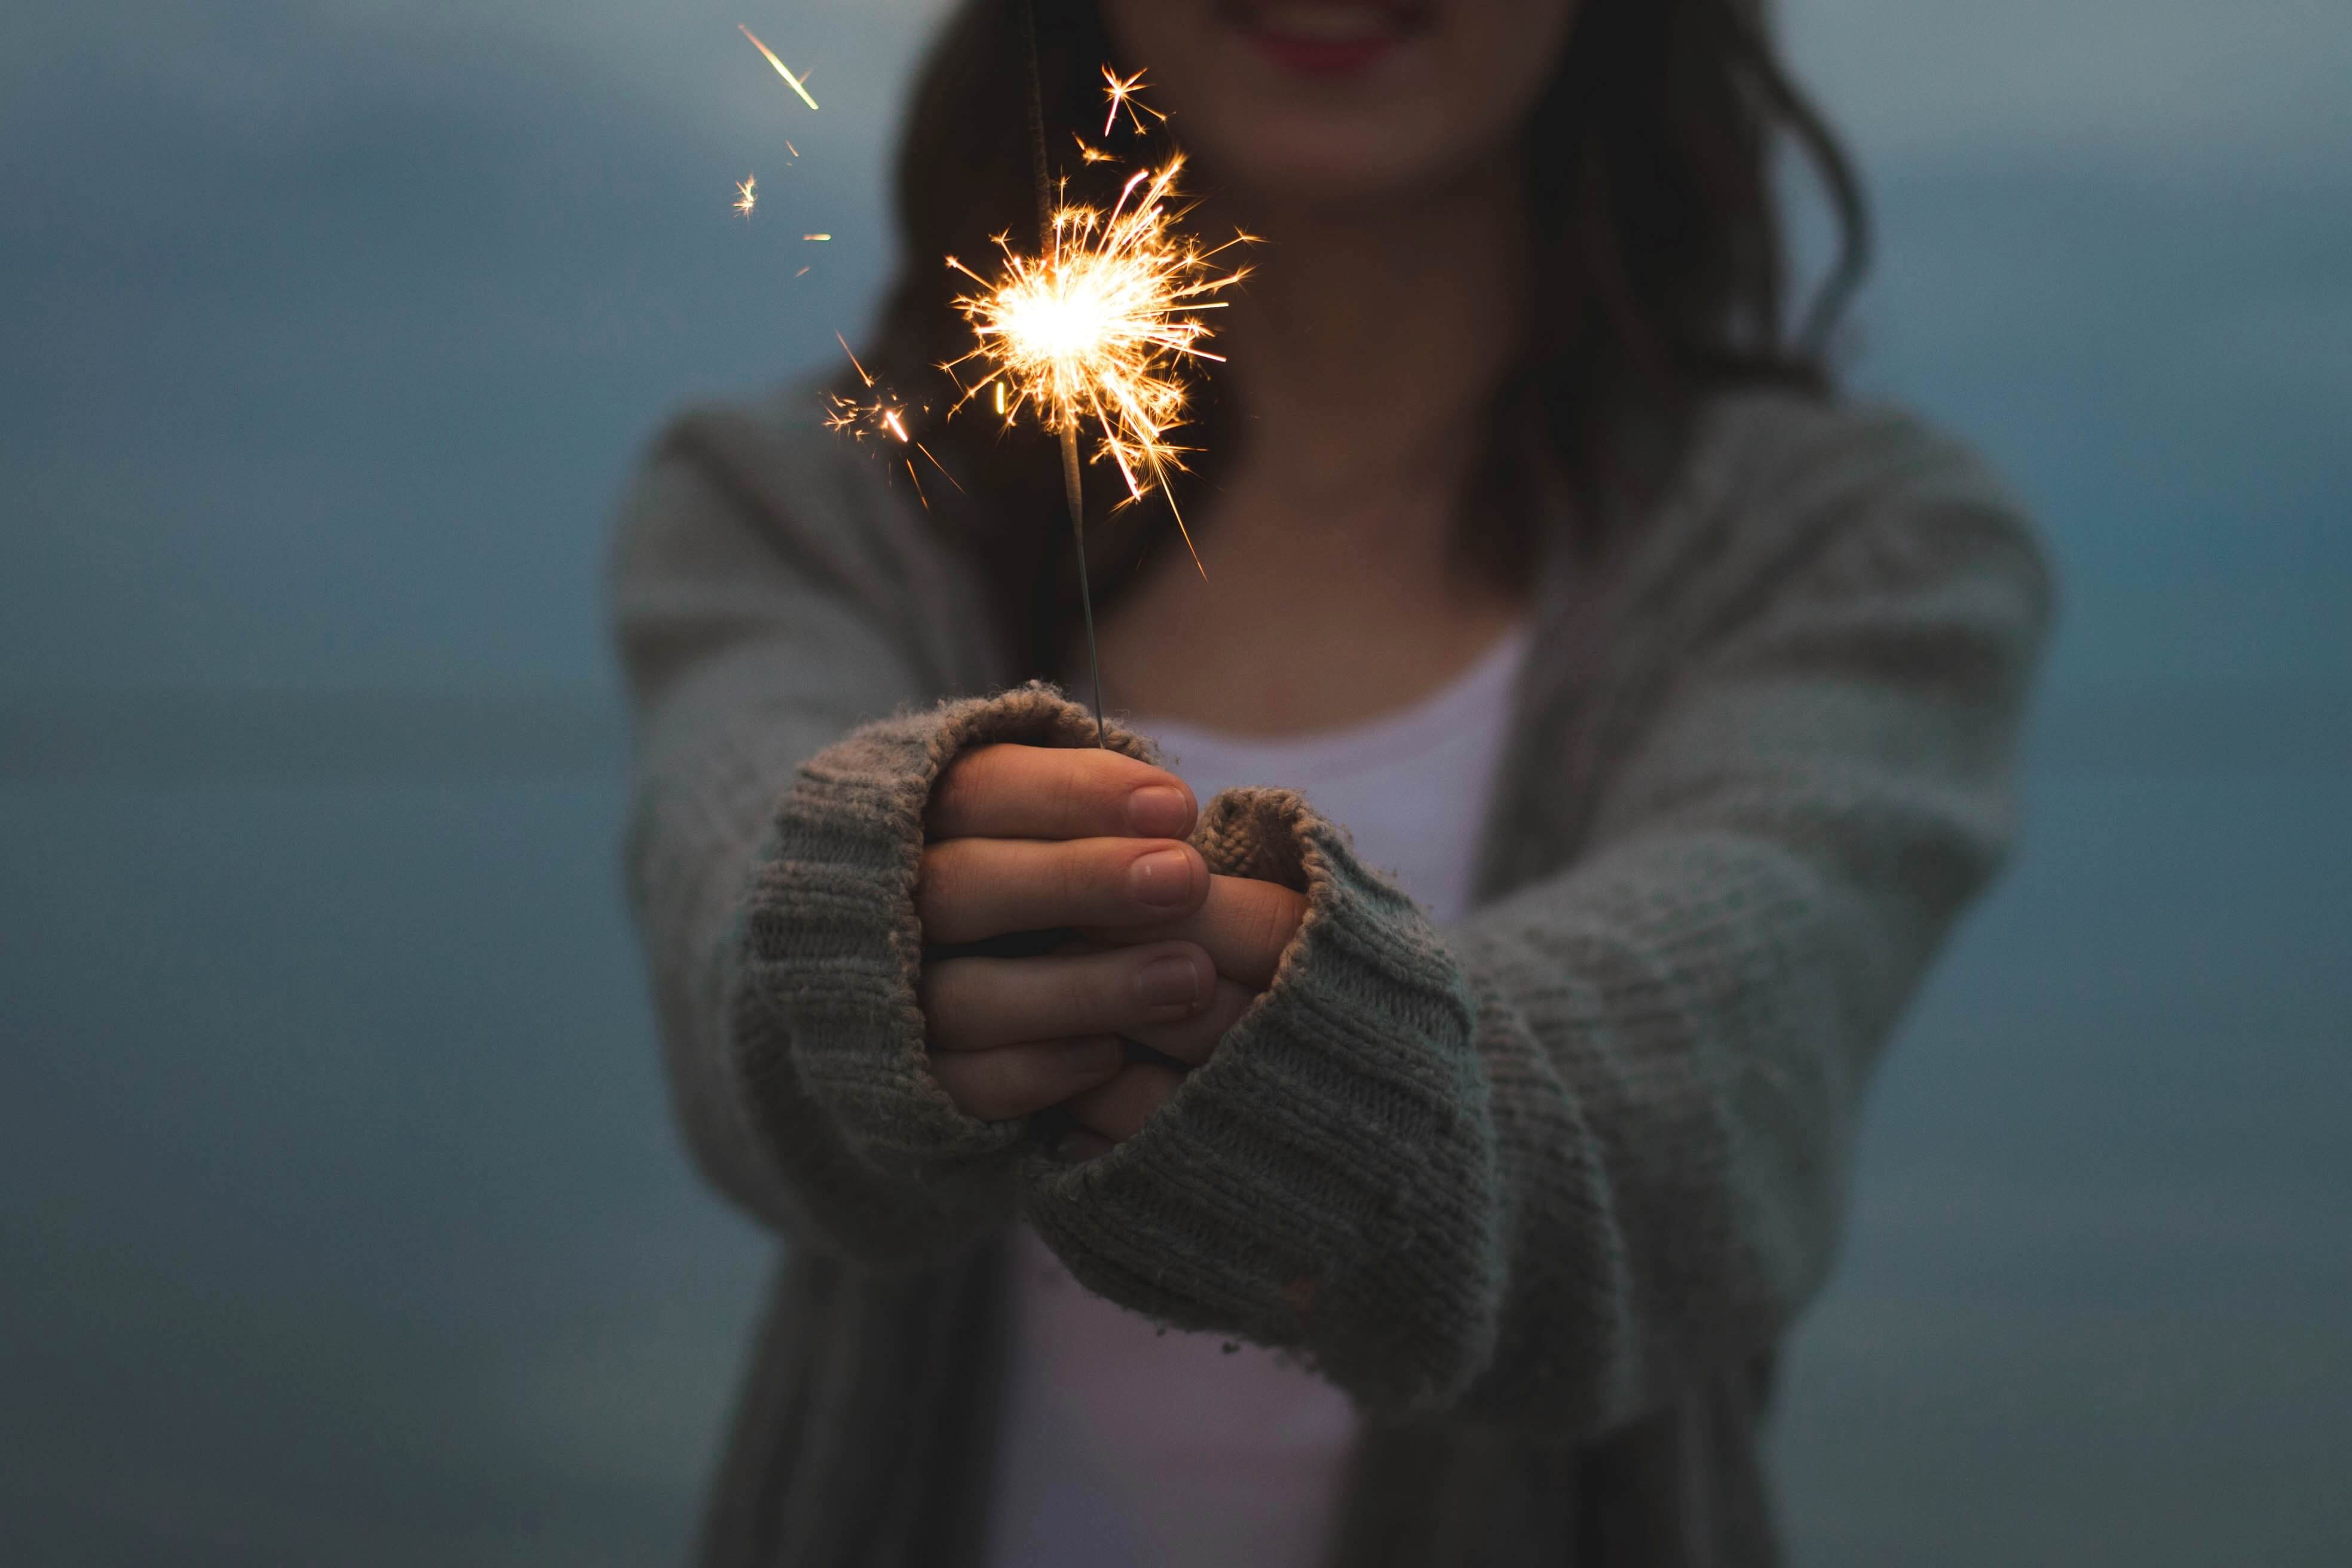 Sparklers and hands